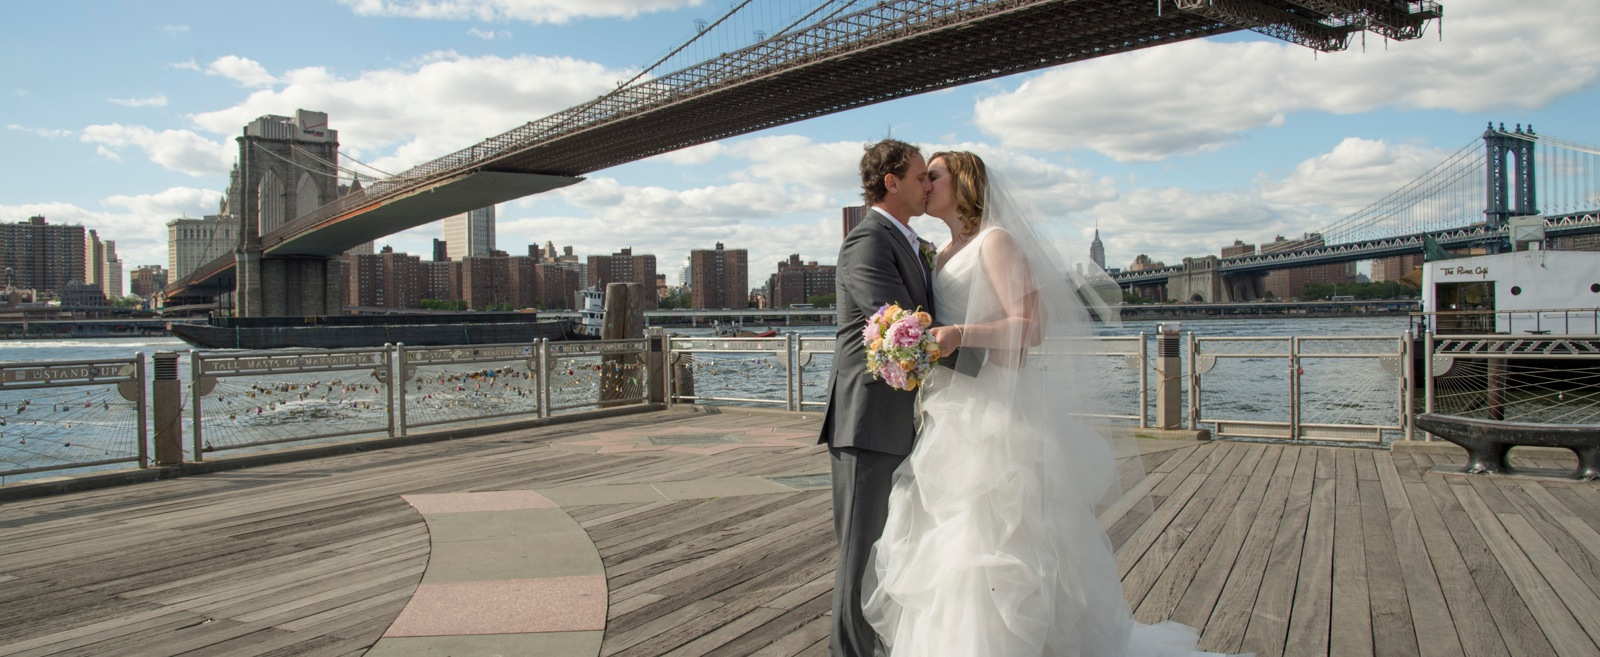 Panoramic view of the waterfront and Brooklyn Bridge